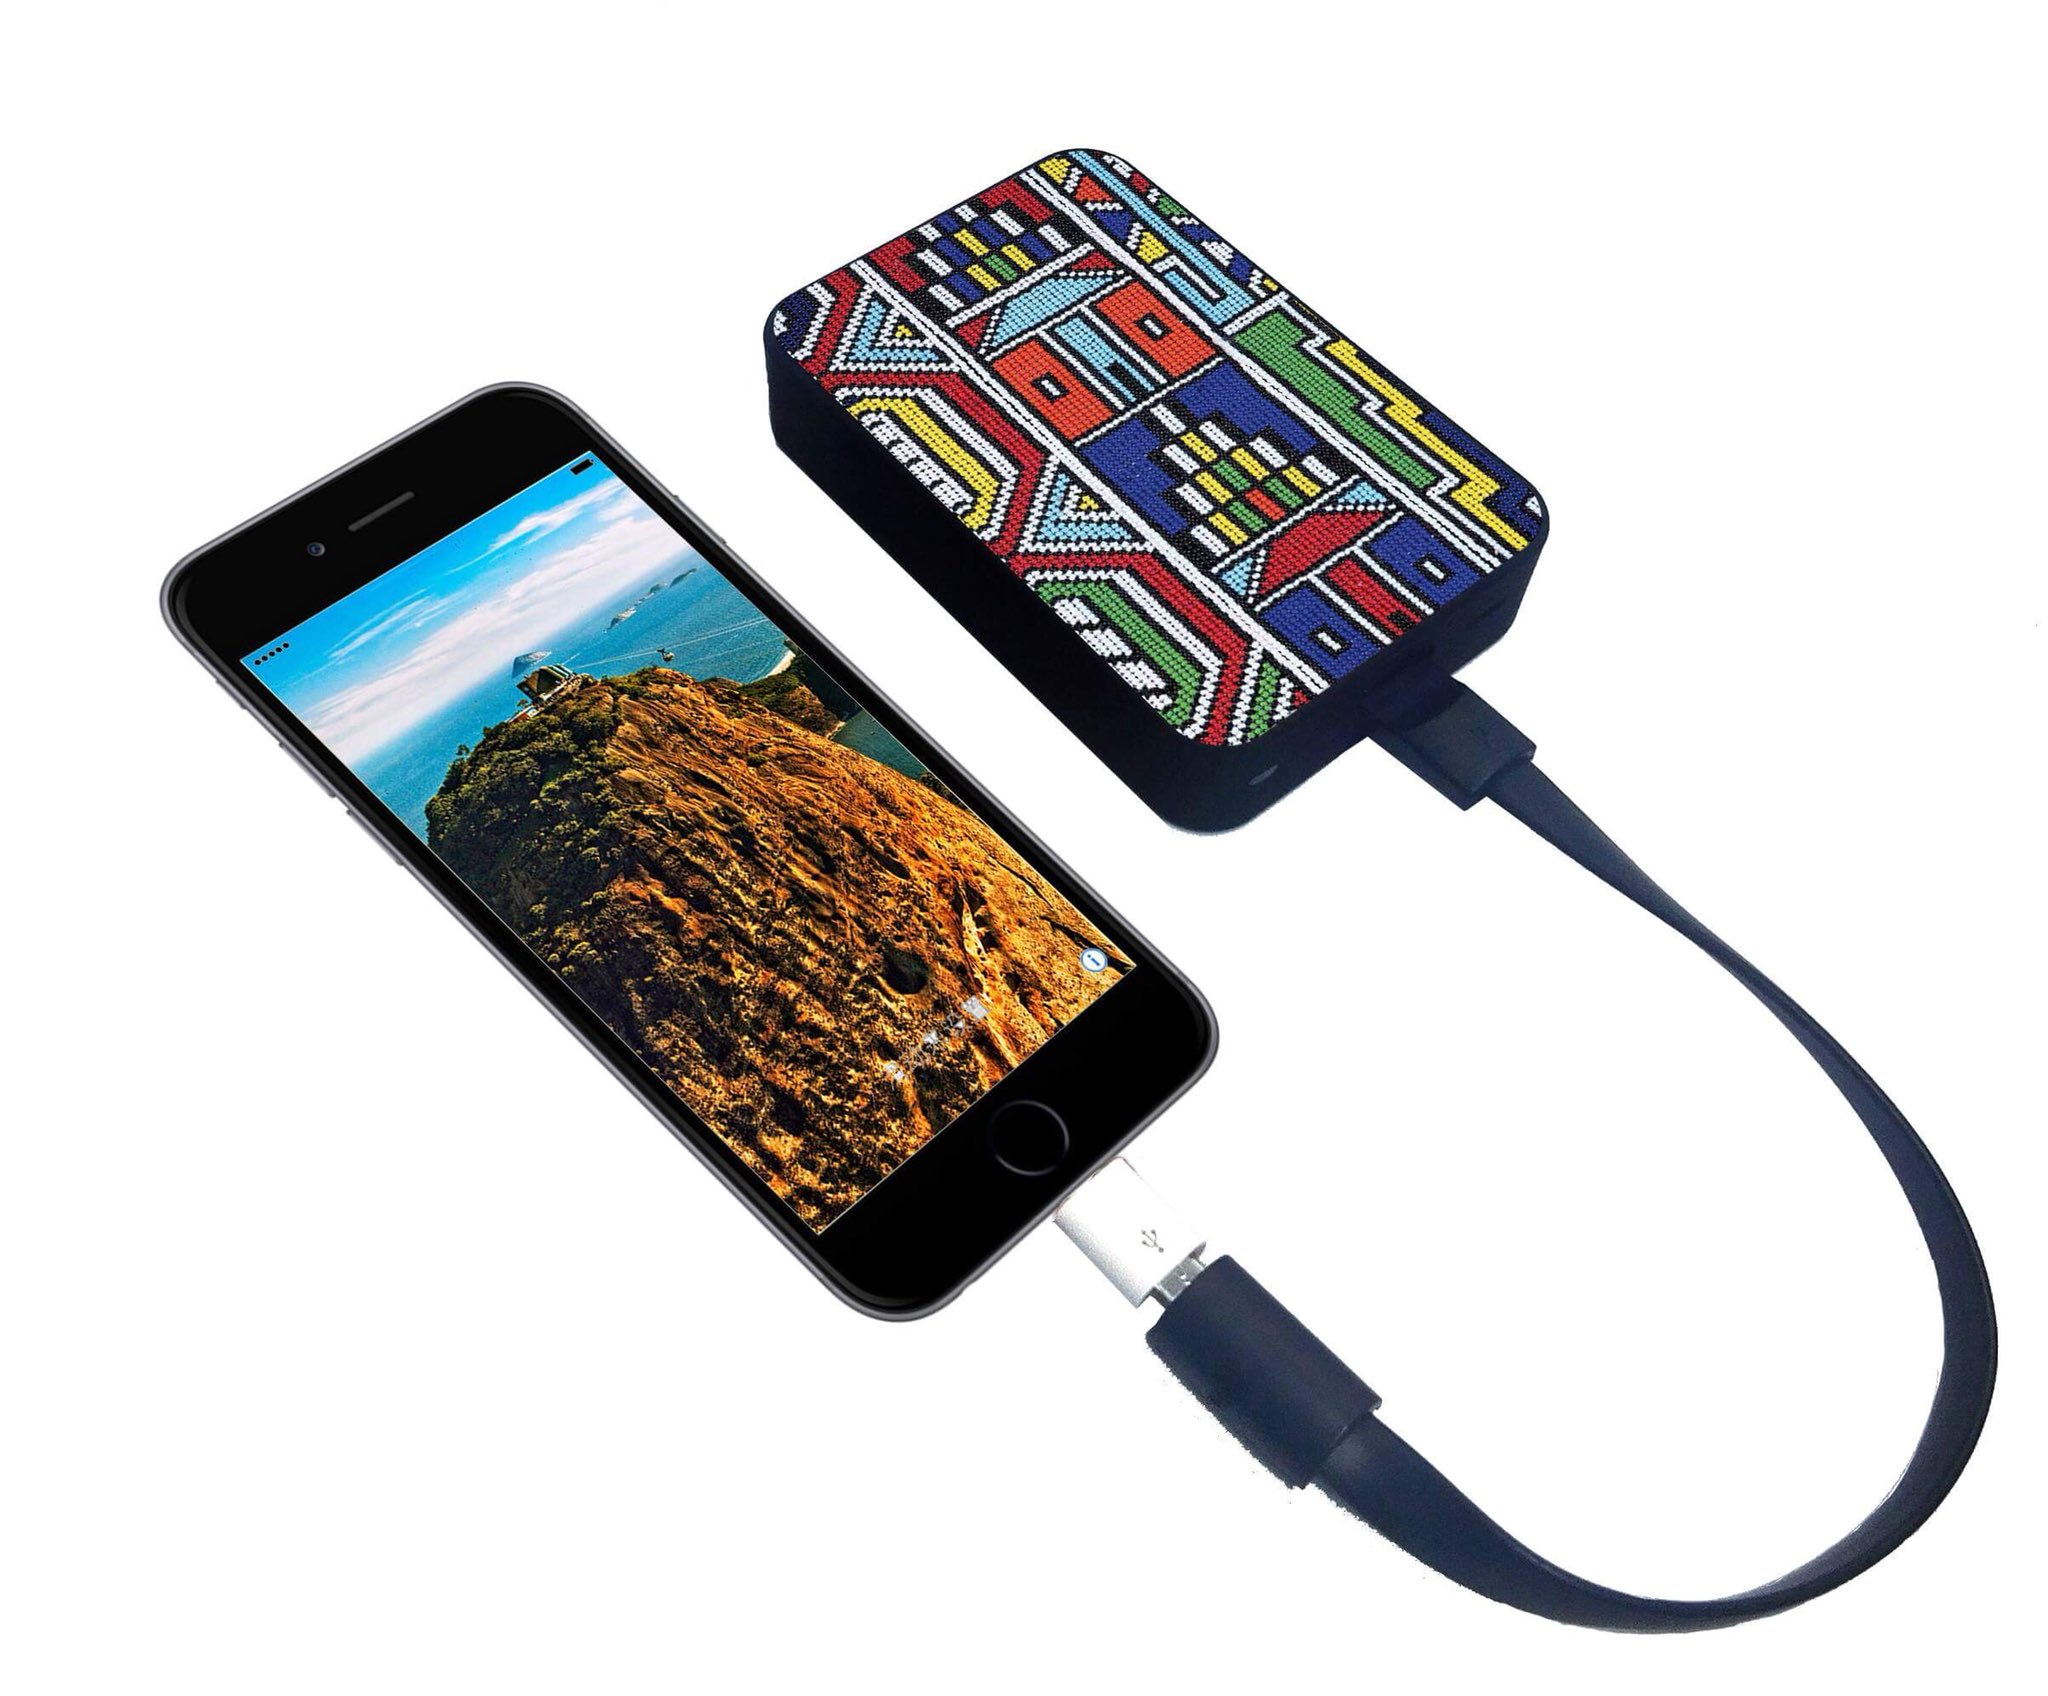 #The new #ndebele inspired Ultracompact chargers are now available!  #zulu #africa #PrimeDay #fashion #style https://t.co/um5FcUMyQP